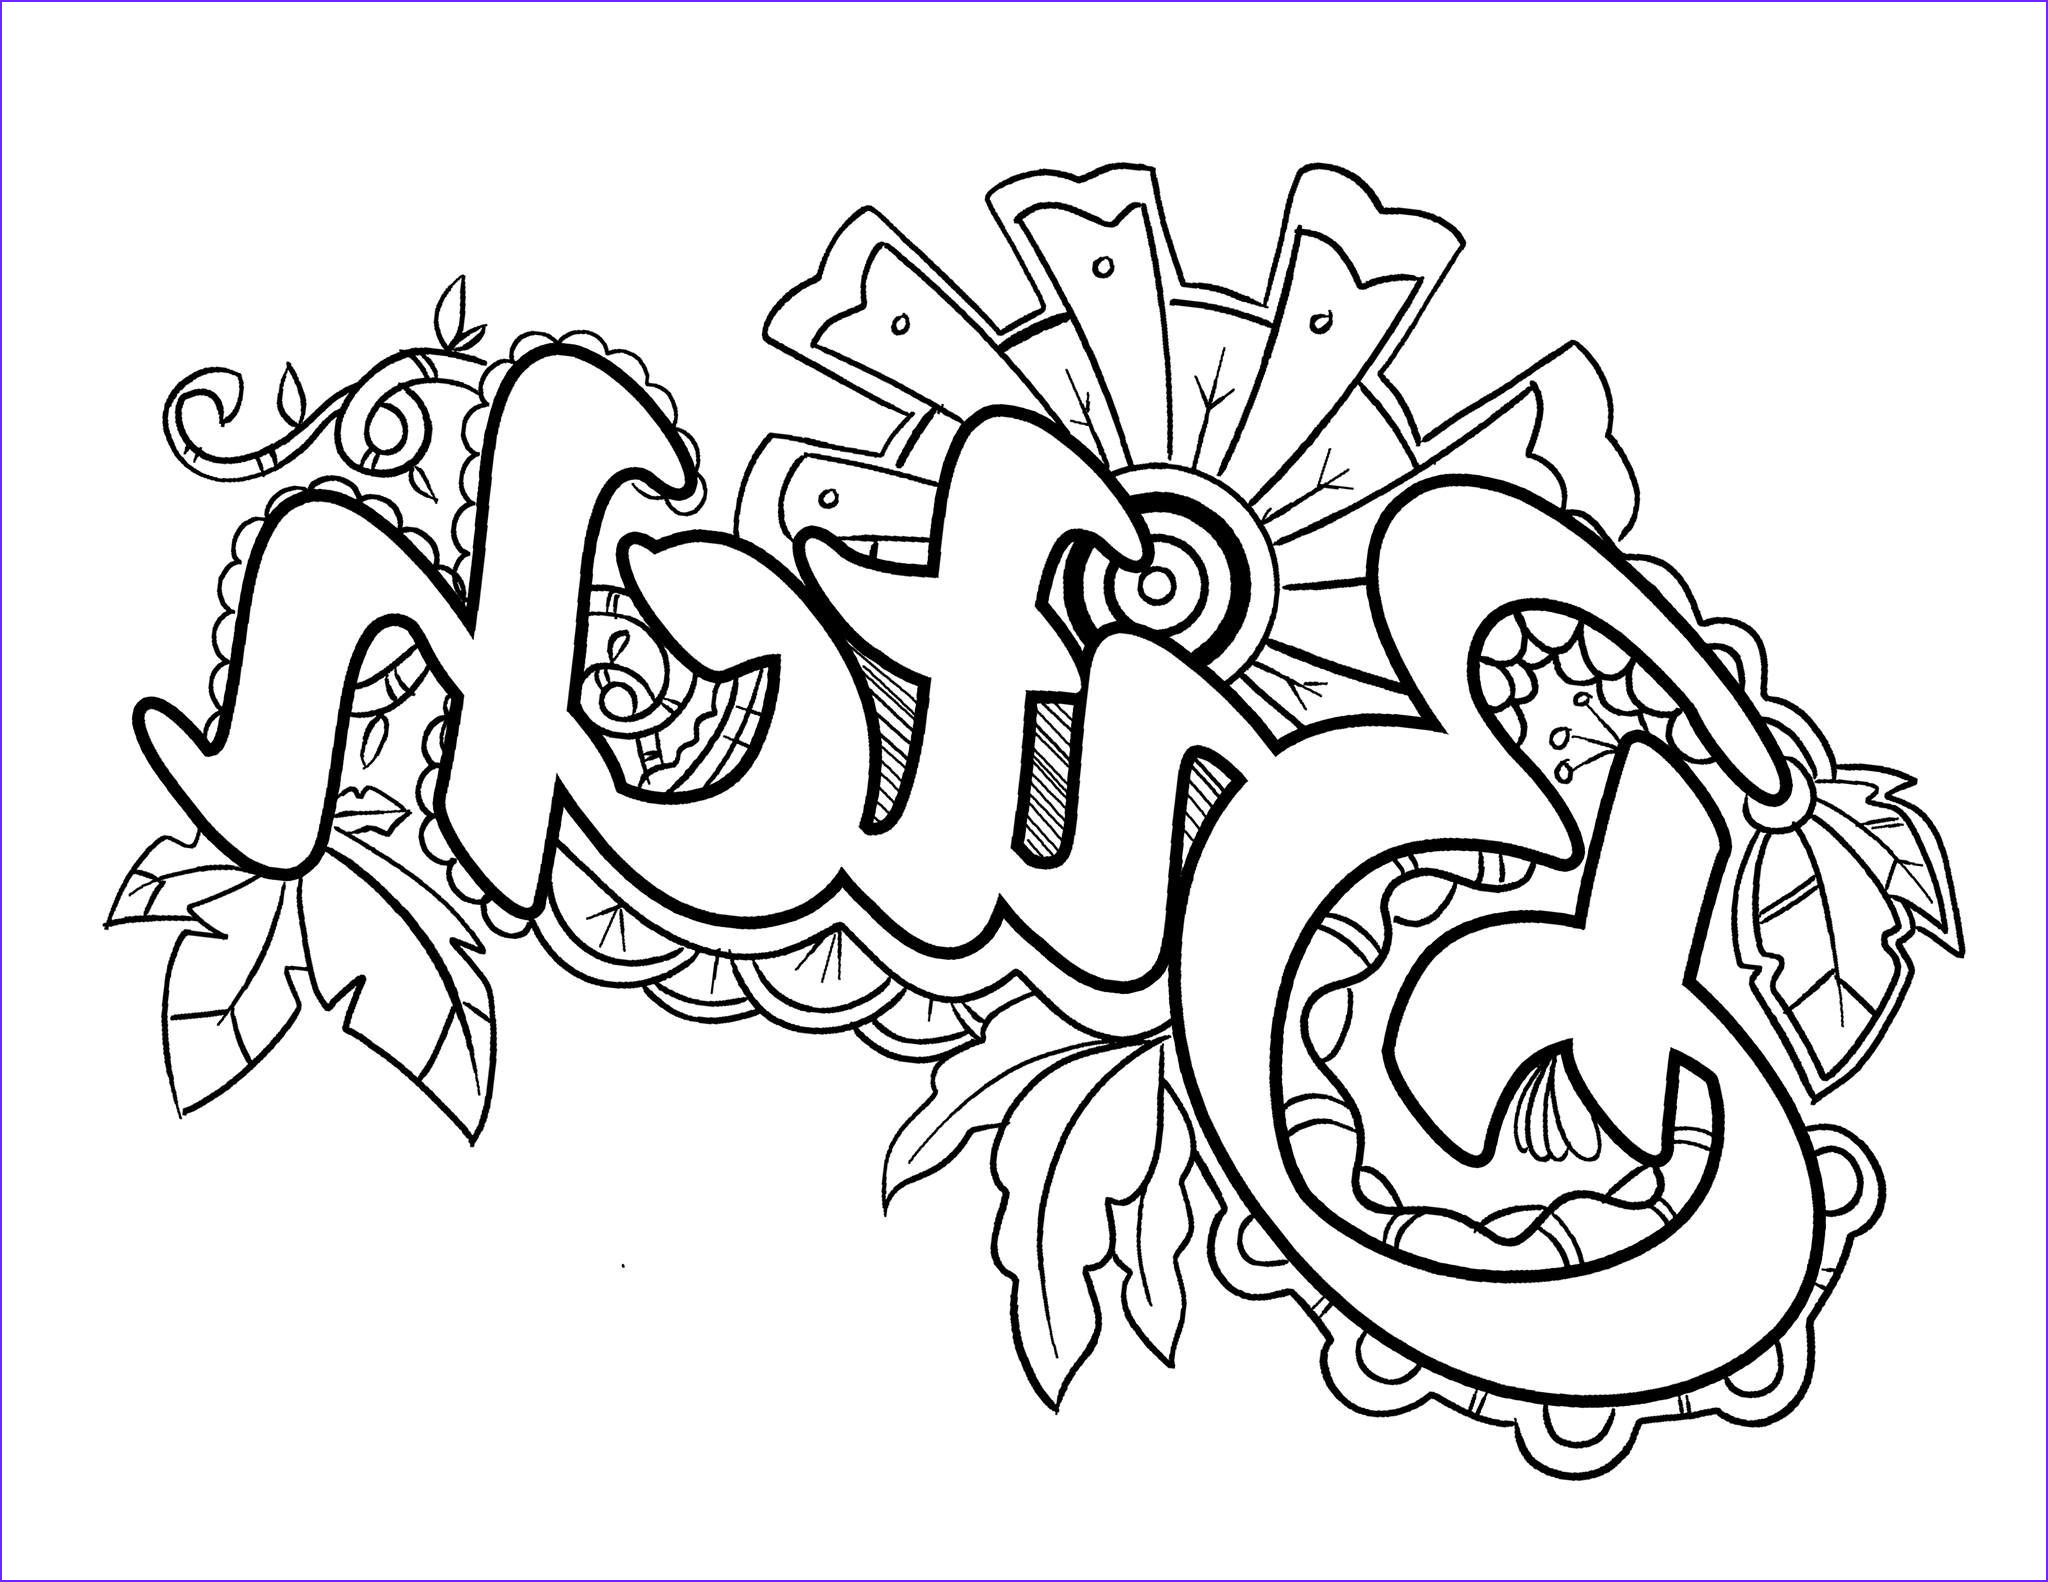 Swear Word Coloring Pages Printable Best Of Photos Pin By Tami Jacobs On Coloring Hippie